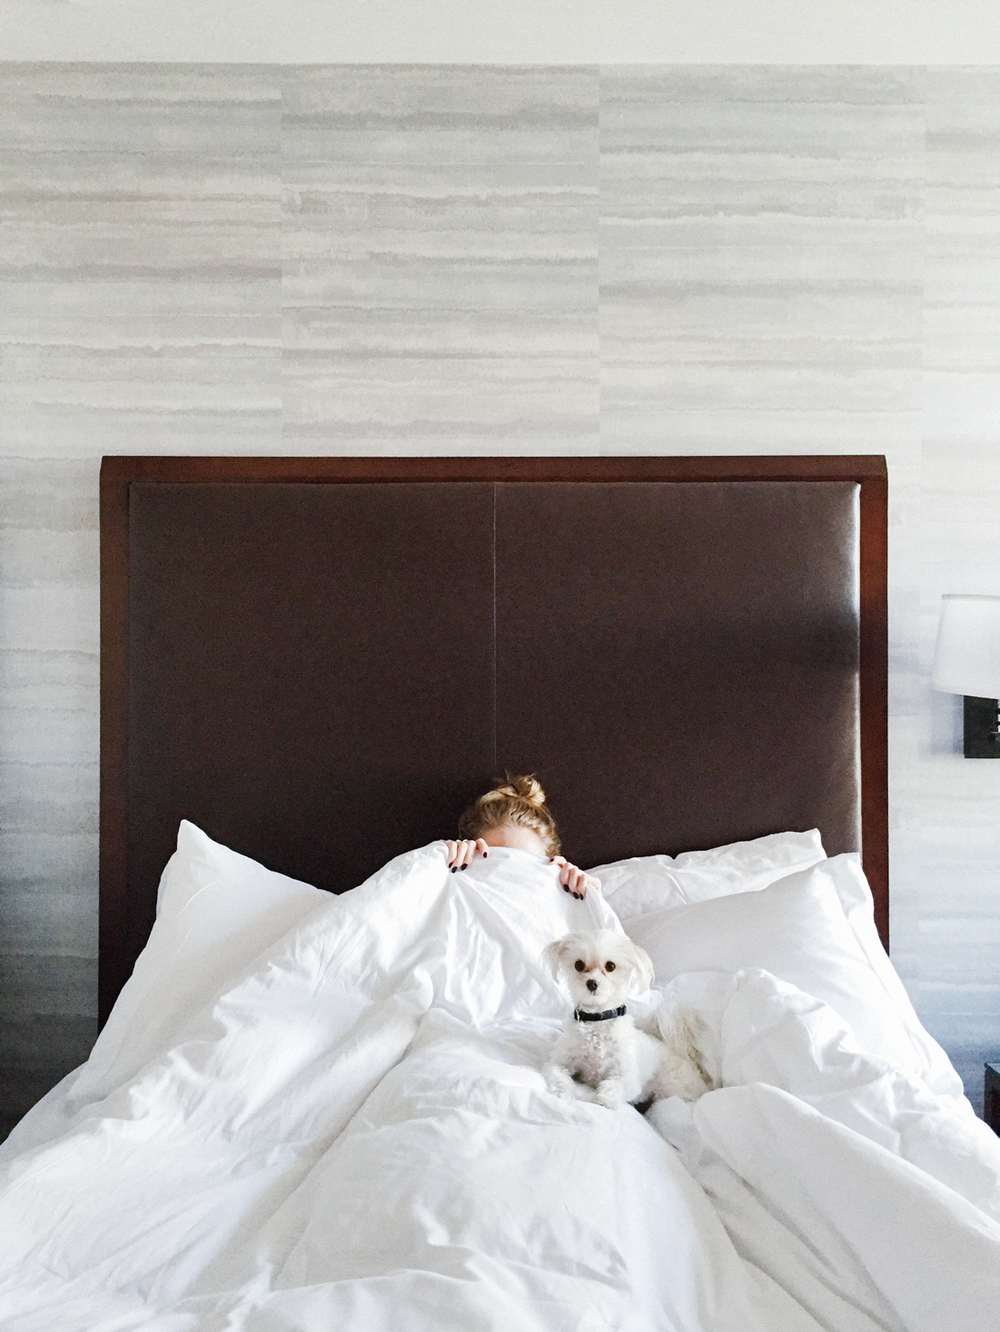 Home Sweet Hotel: The Hotel Ivy | truelane